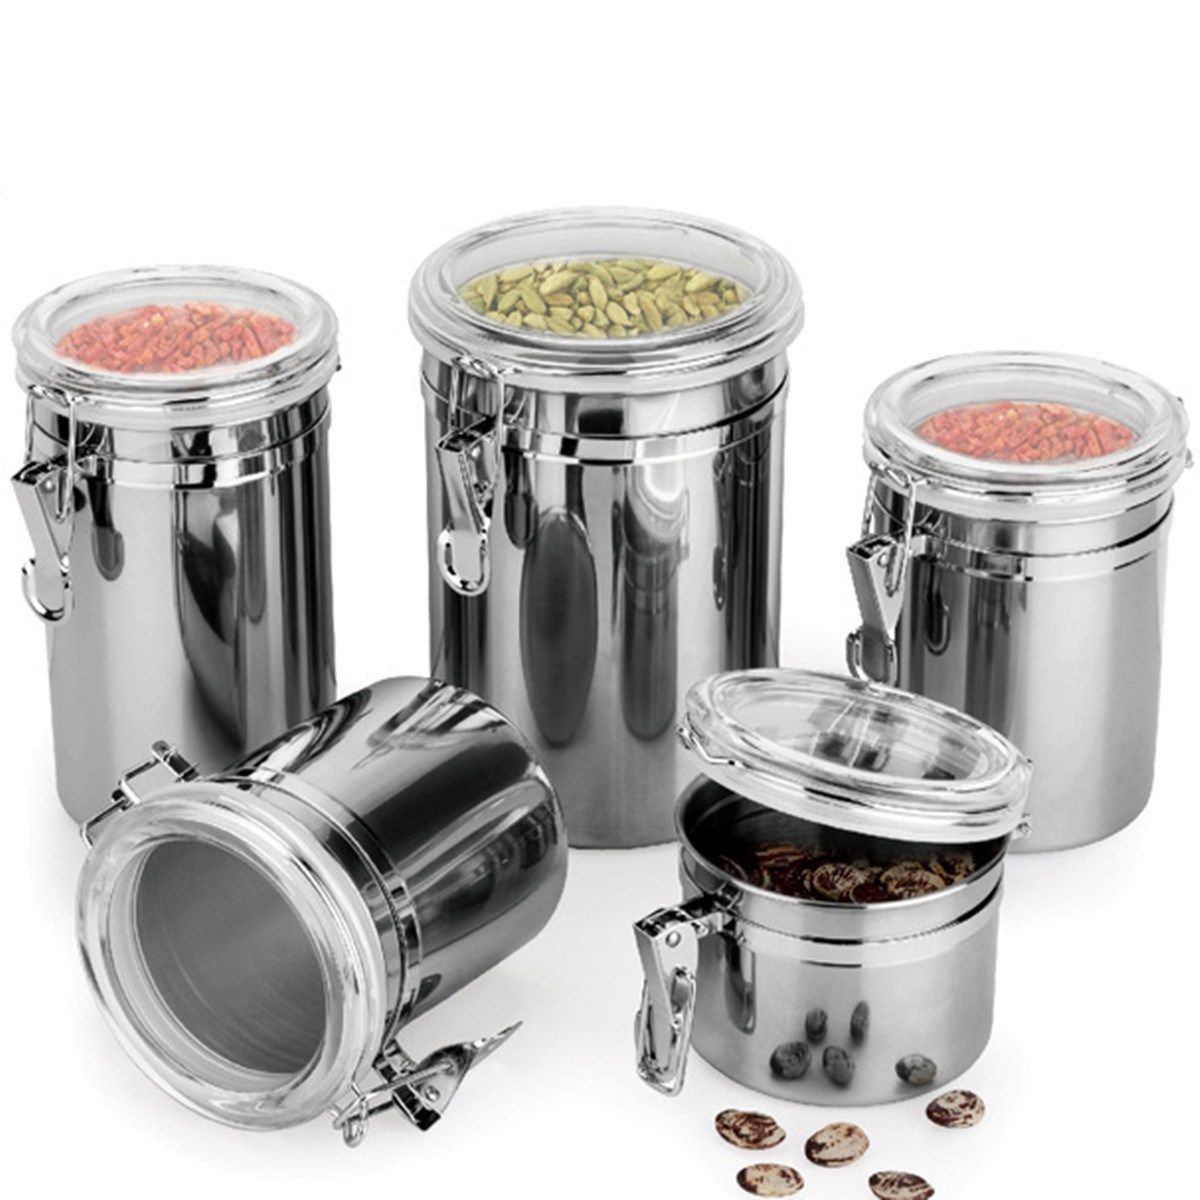 $4.92 $7.90 // Kitchen Containers // Multiple Sizes Available // Delivery: